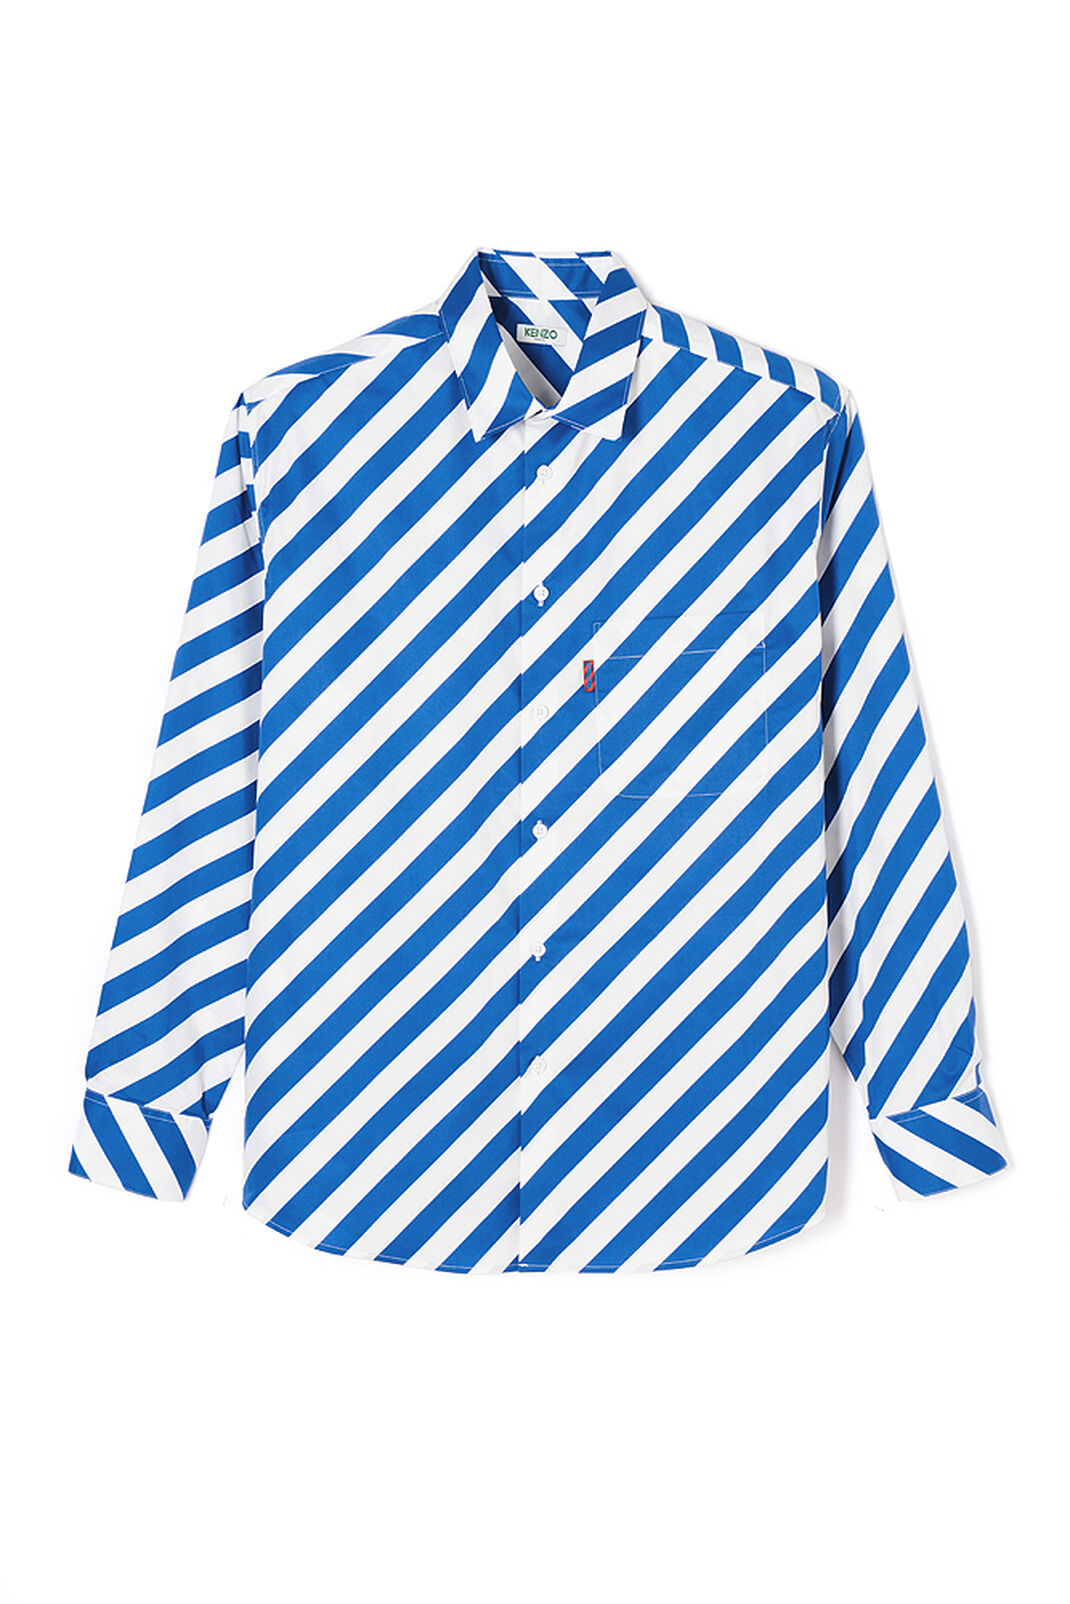 DEEP SEA BLUE Diagonal striped shirt for men KENZO